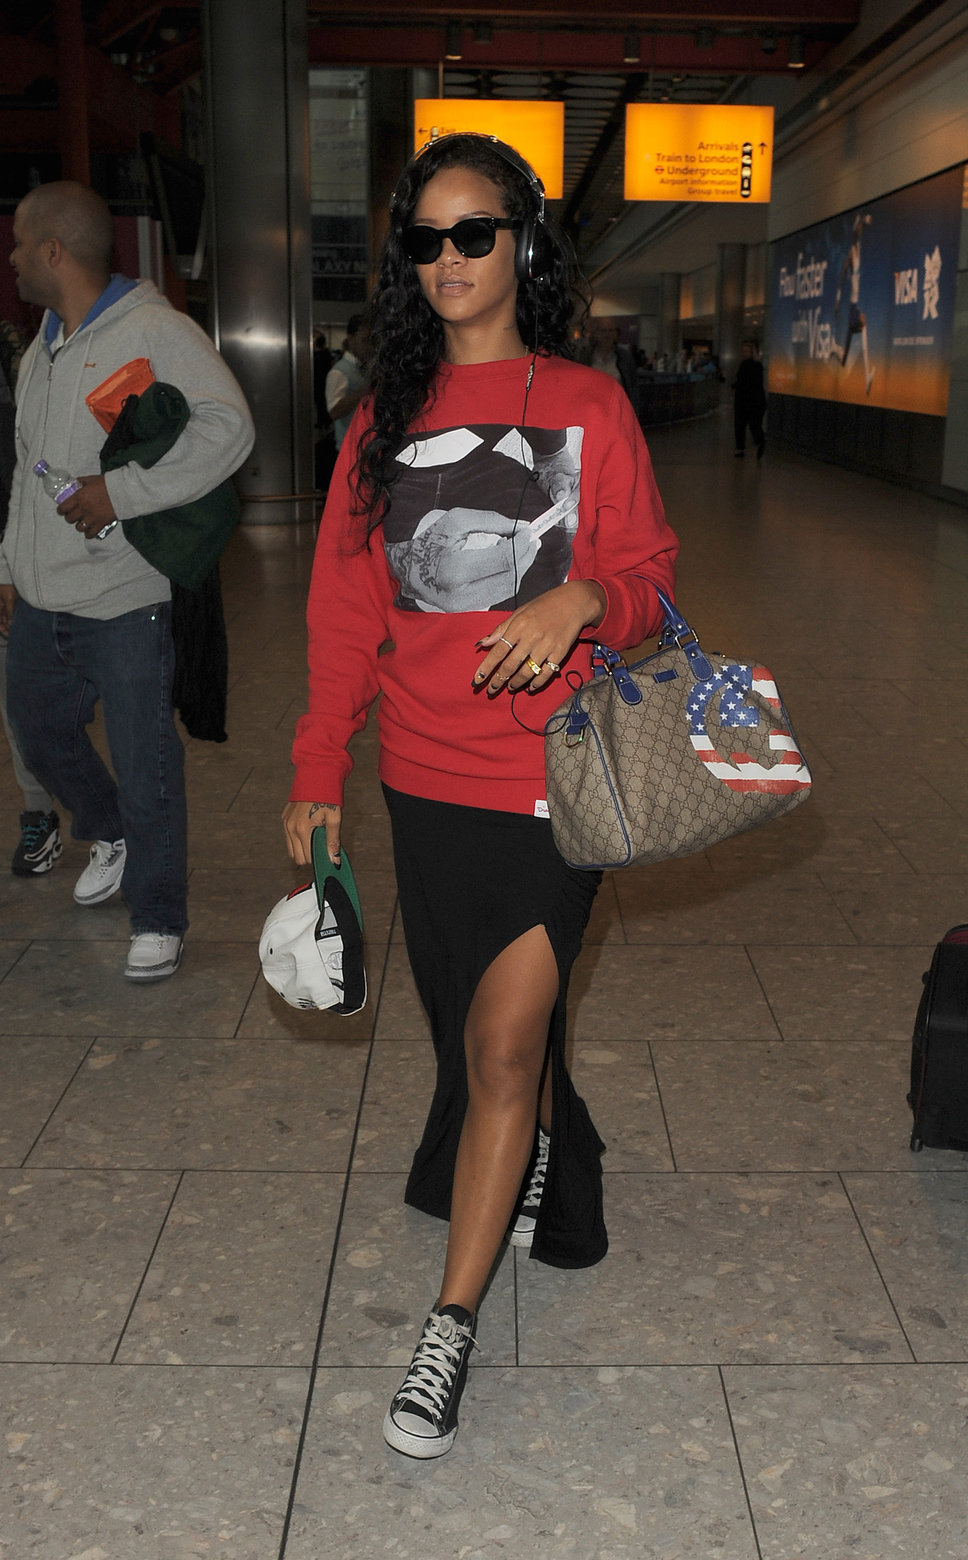 International pop star Rihanna paired her black Chuck Taylor Core Ox sneakers with a black thigh high split maxi skirt and an oversized red pullover sweater for an effortless airport look.